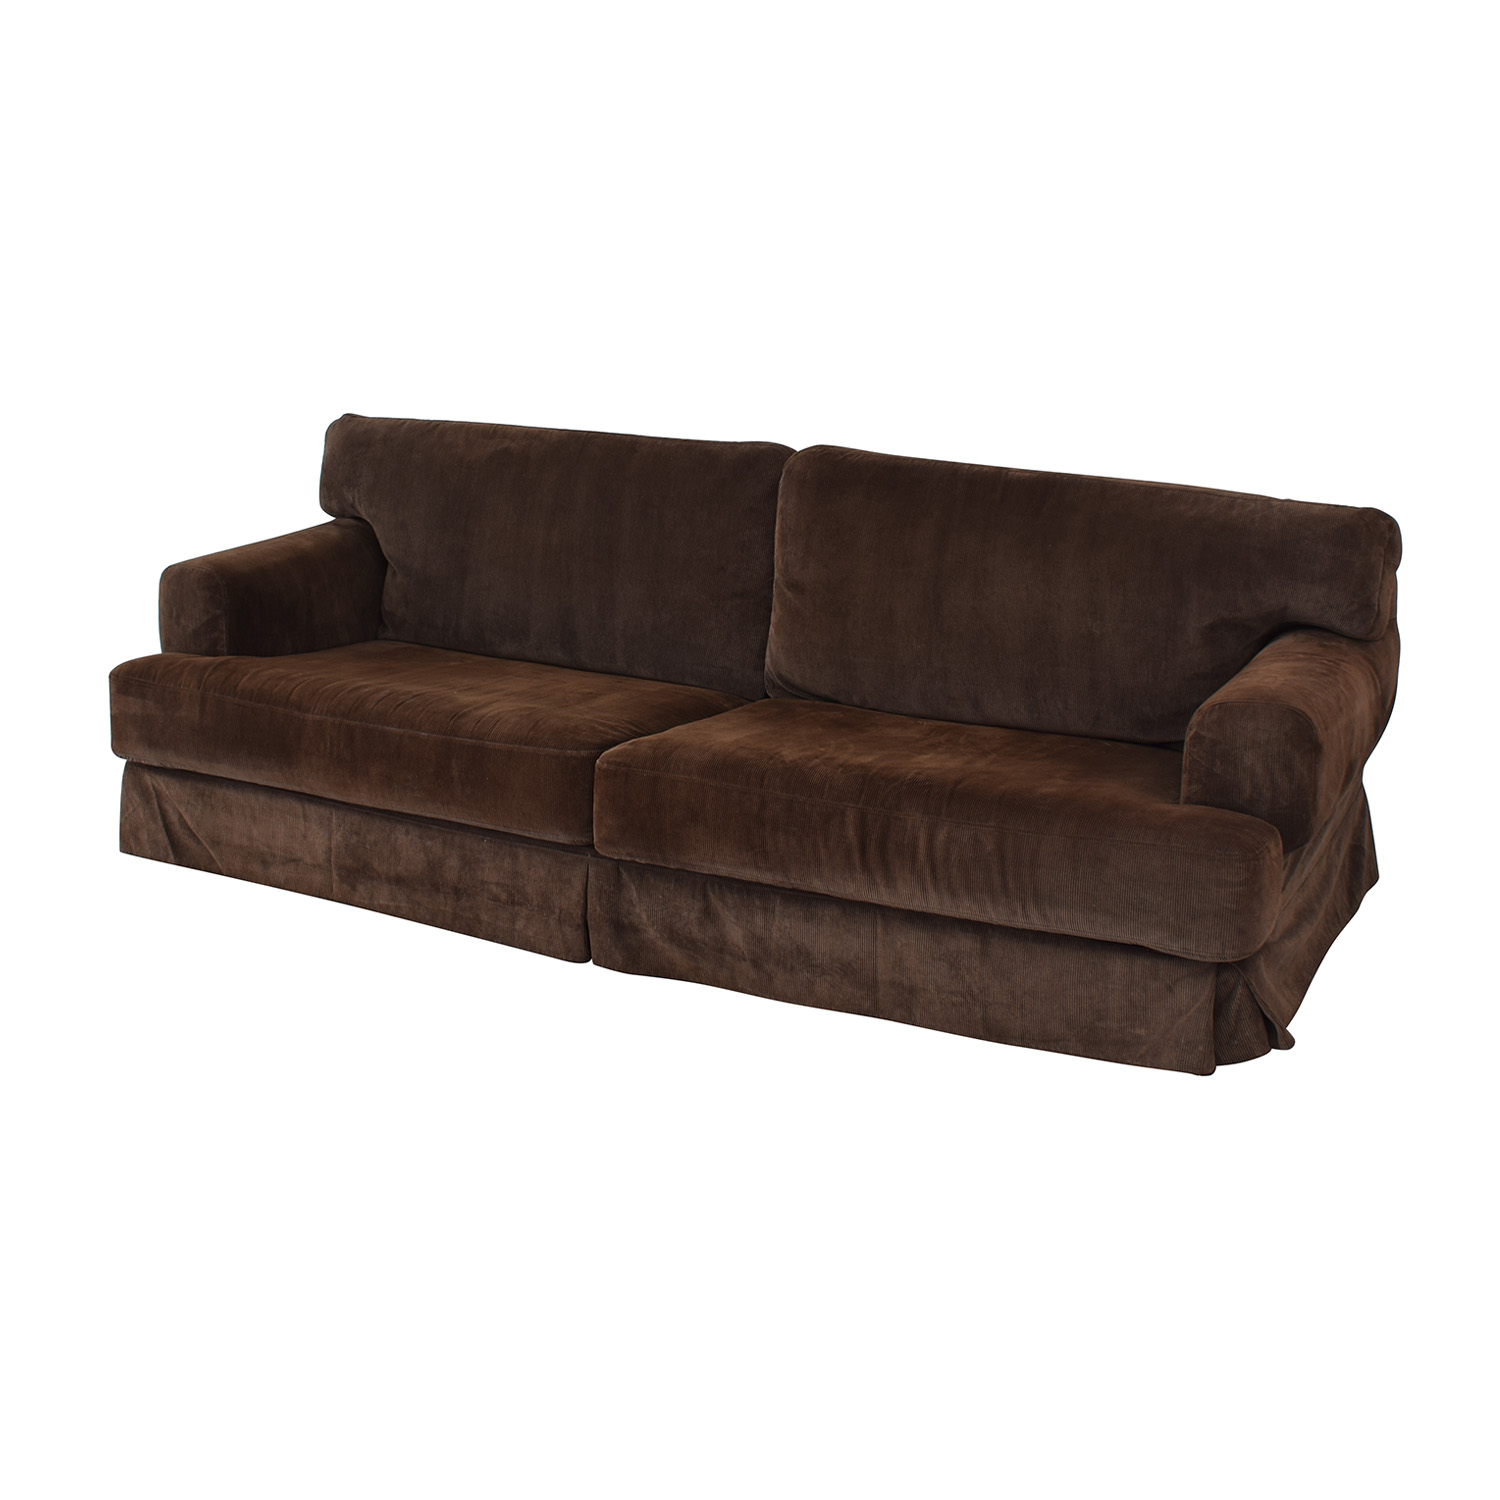 Kungsvik Sand IKEA TYLOSAND 3-Seat Sofa Couch Cover Slipcover Special Offer!